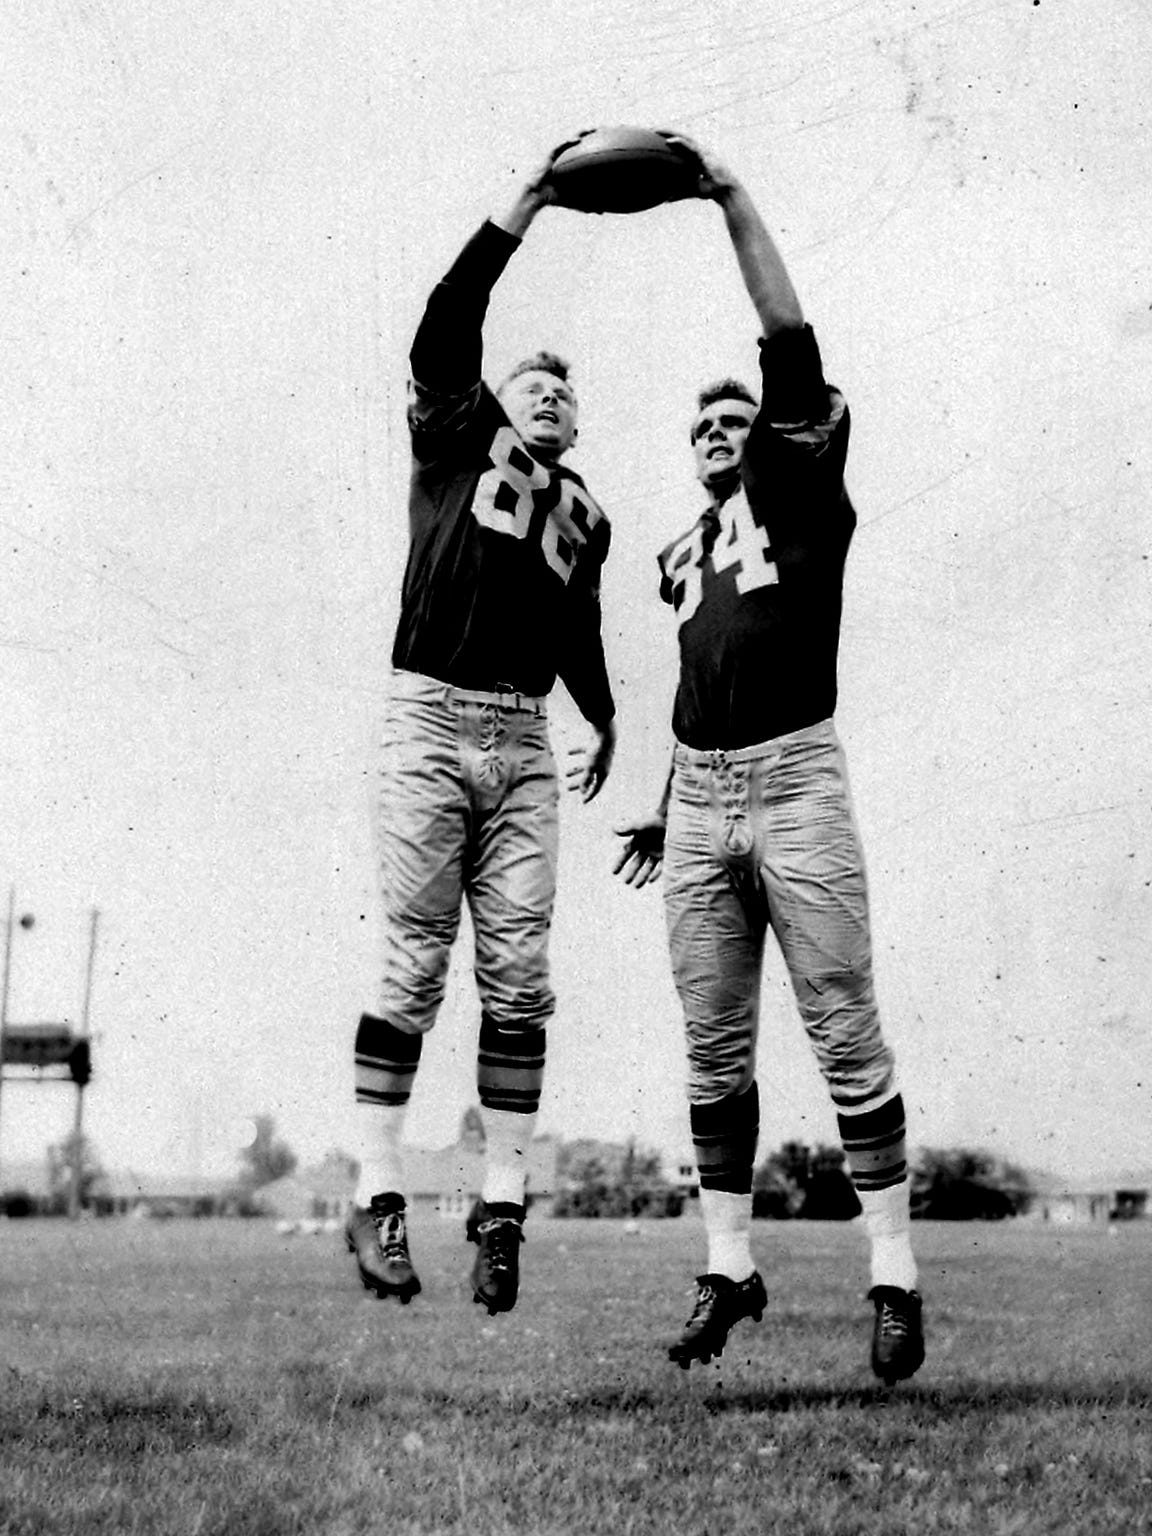 Green Bay Packers ends Billy Howton, left, and Gary Knafelc, who posed for this photo in early August 1957, scored key touchdowns in the team's first game at new City Stadium about six weeks later.